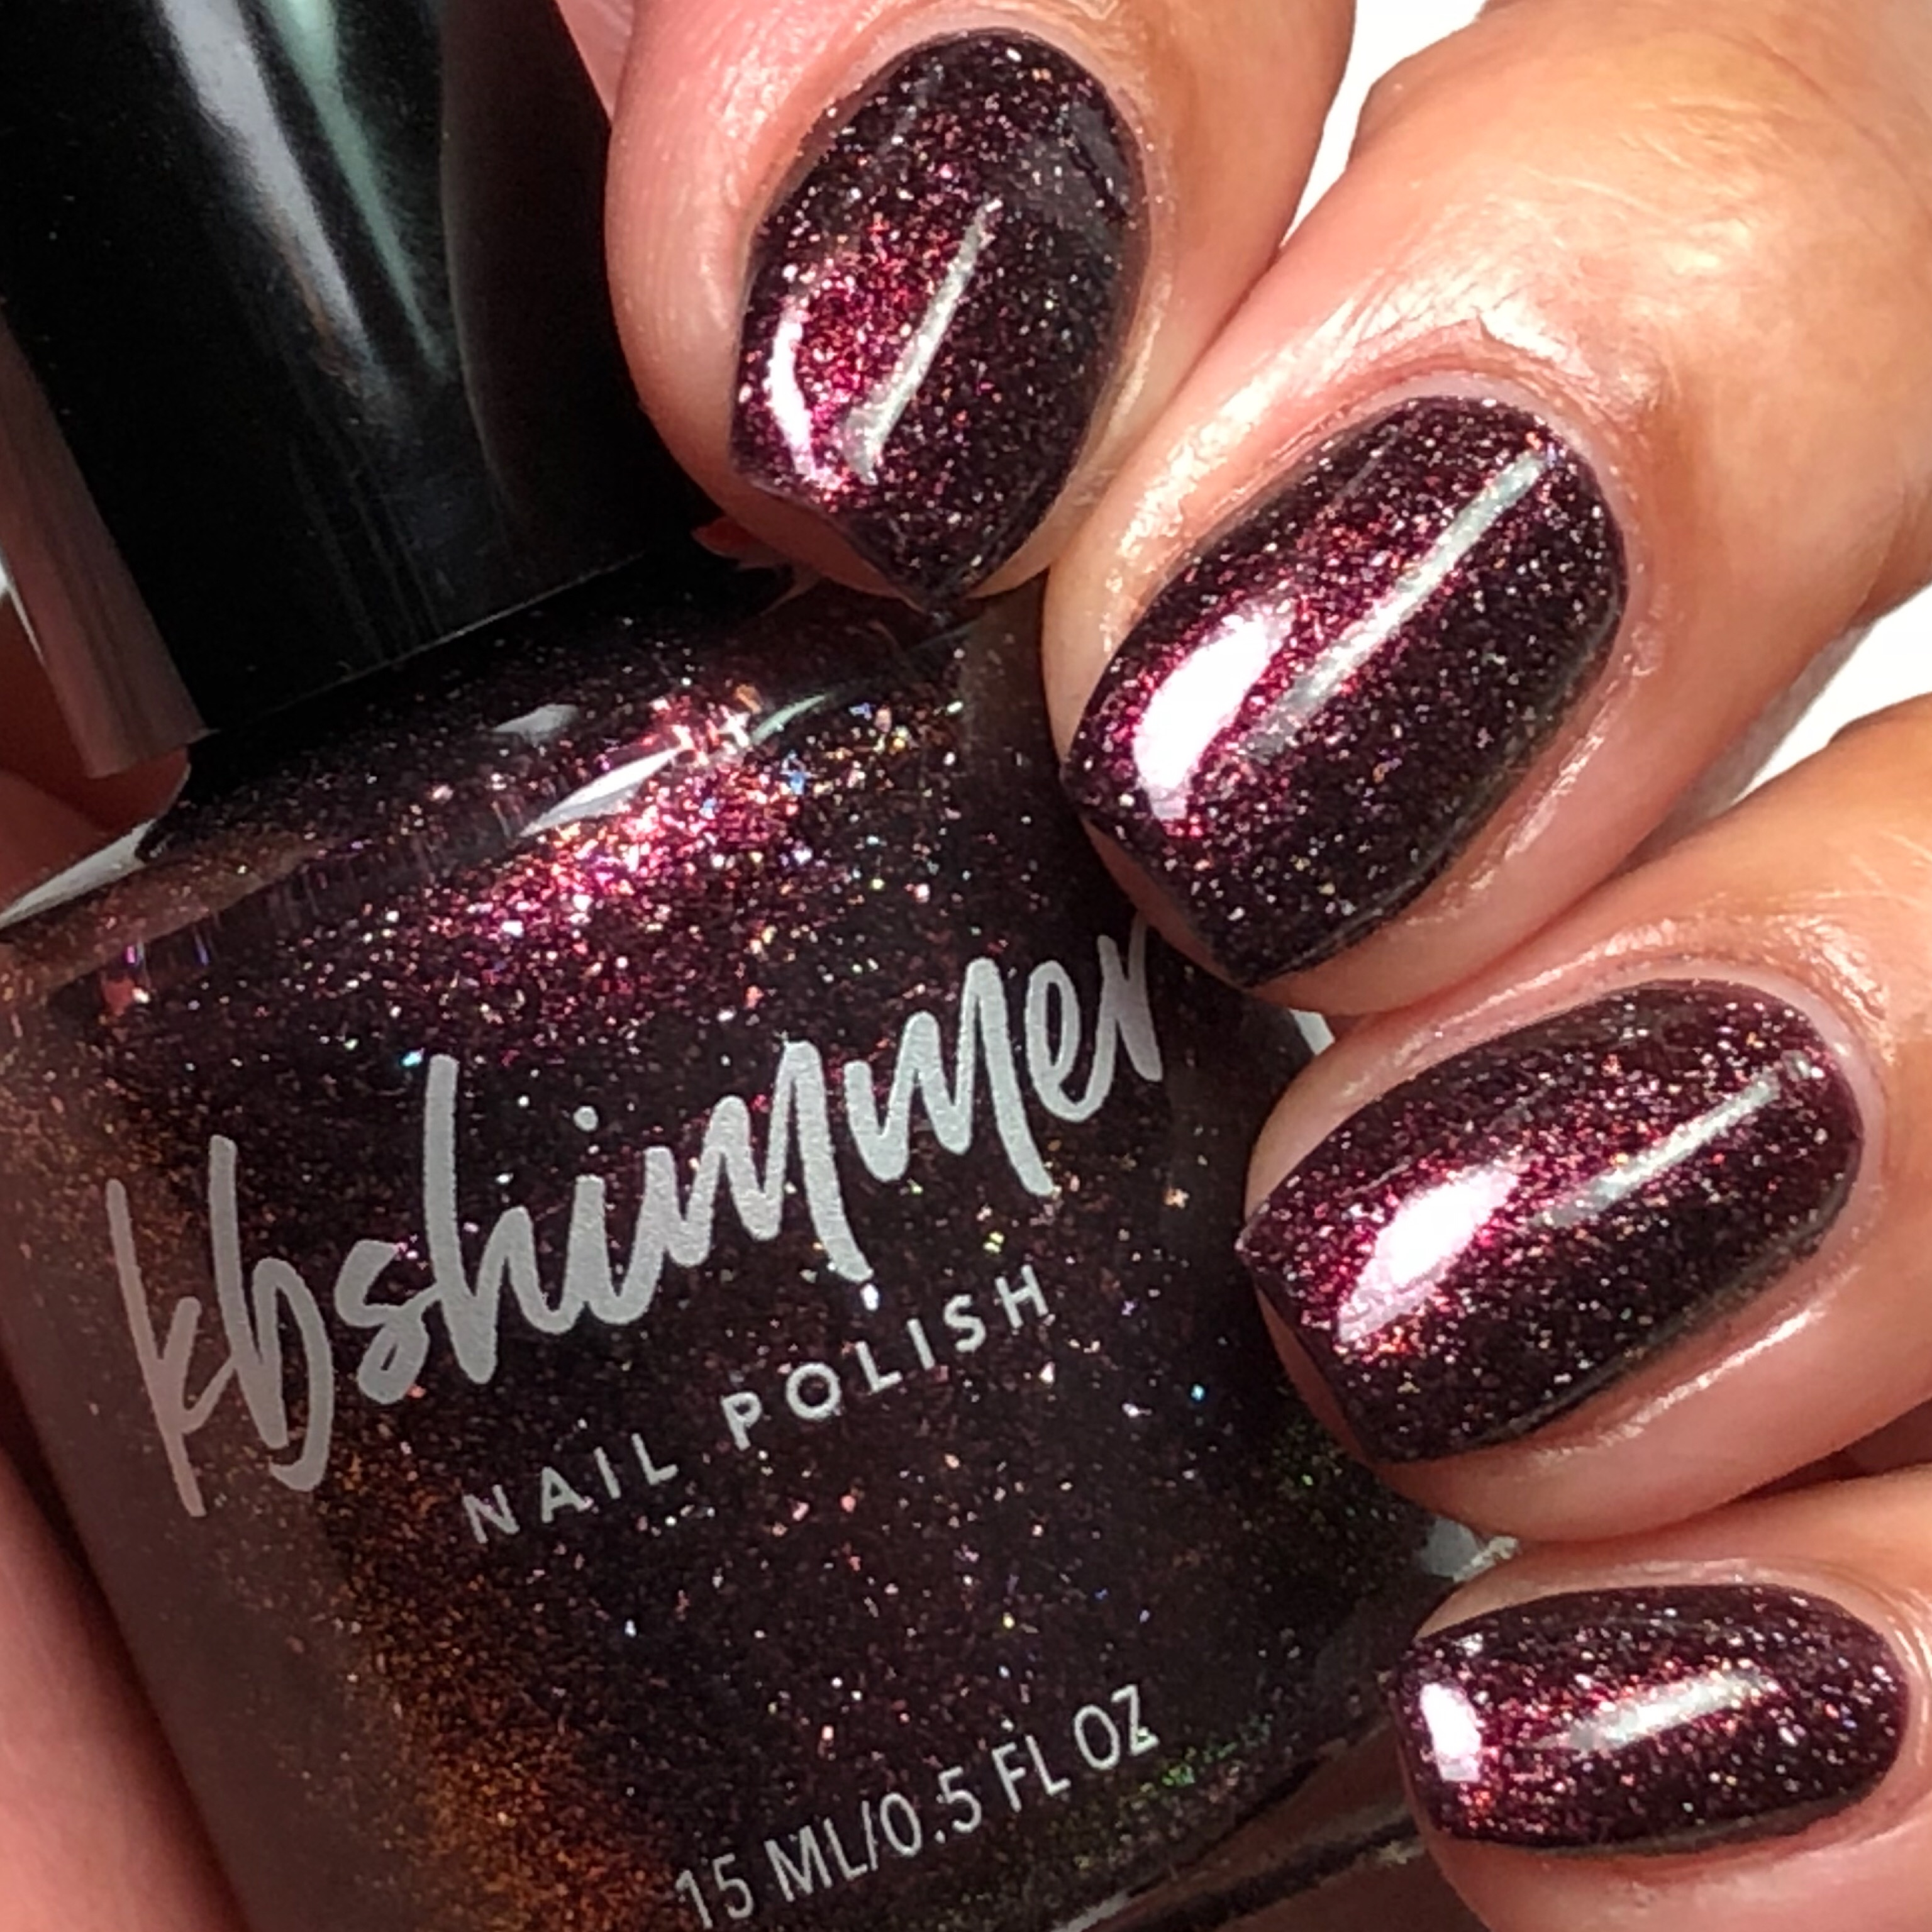 Pour Decisions Glow Flake Polish by KBShimmer